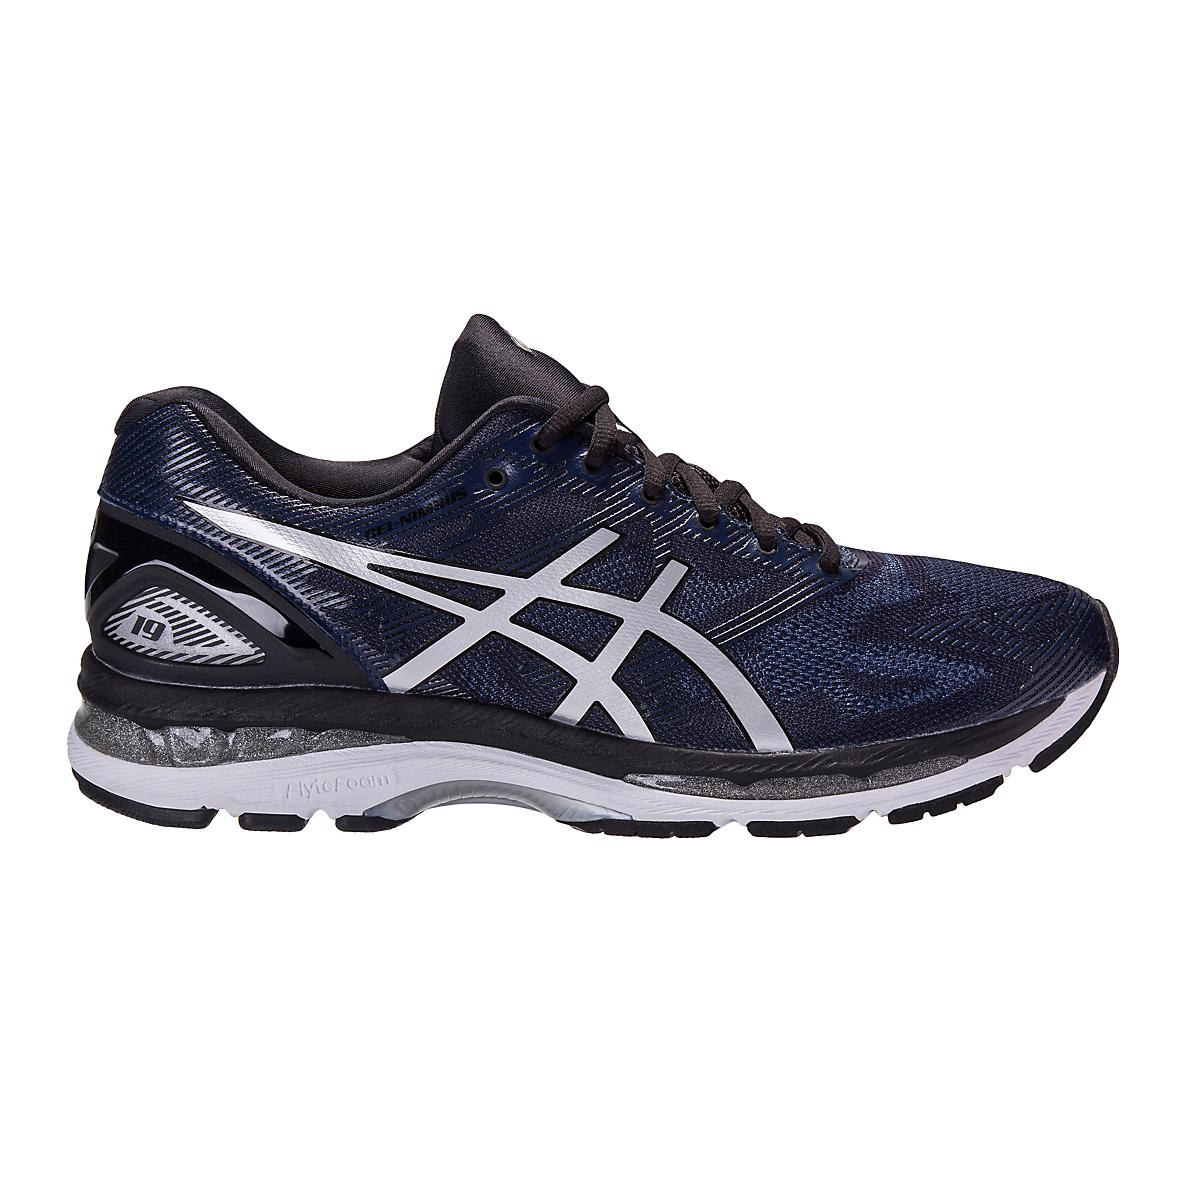 Mens Country Road Shoes